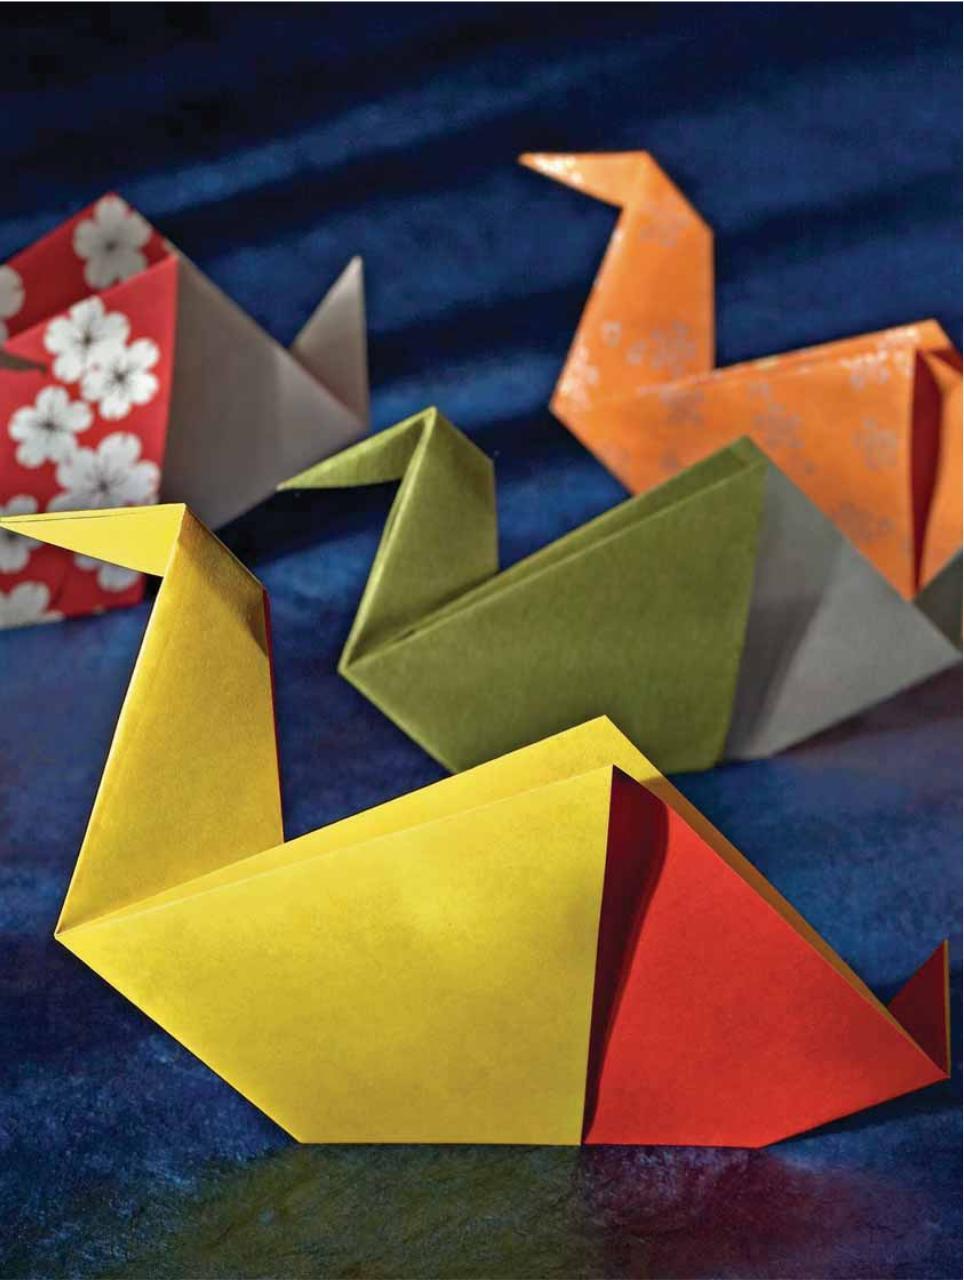 10 Fold Origami Fabulous Paperfolds You Can Make In Just Steps Complex Diagrams Pdf Peter Engel Allan Penn Fabulouspdf Page 3